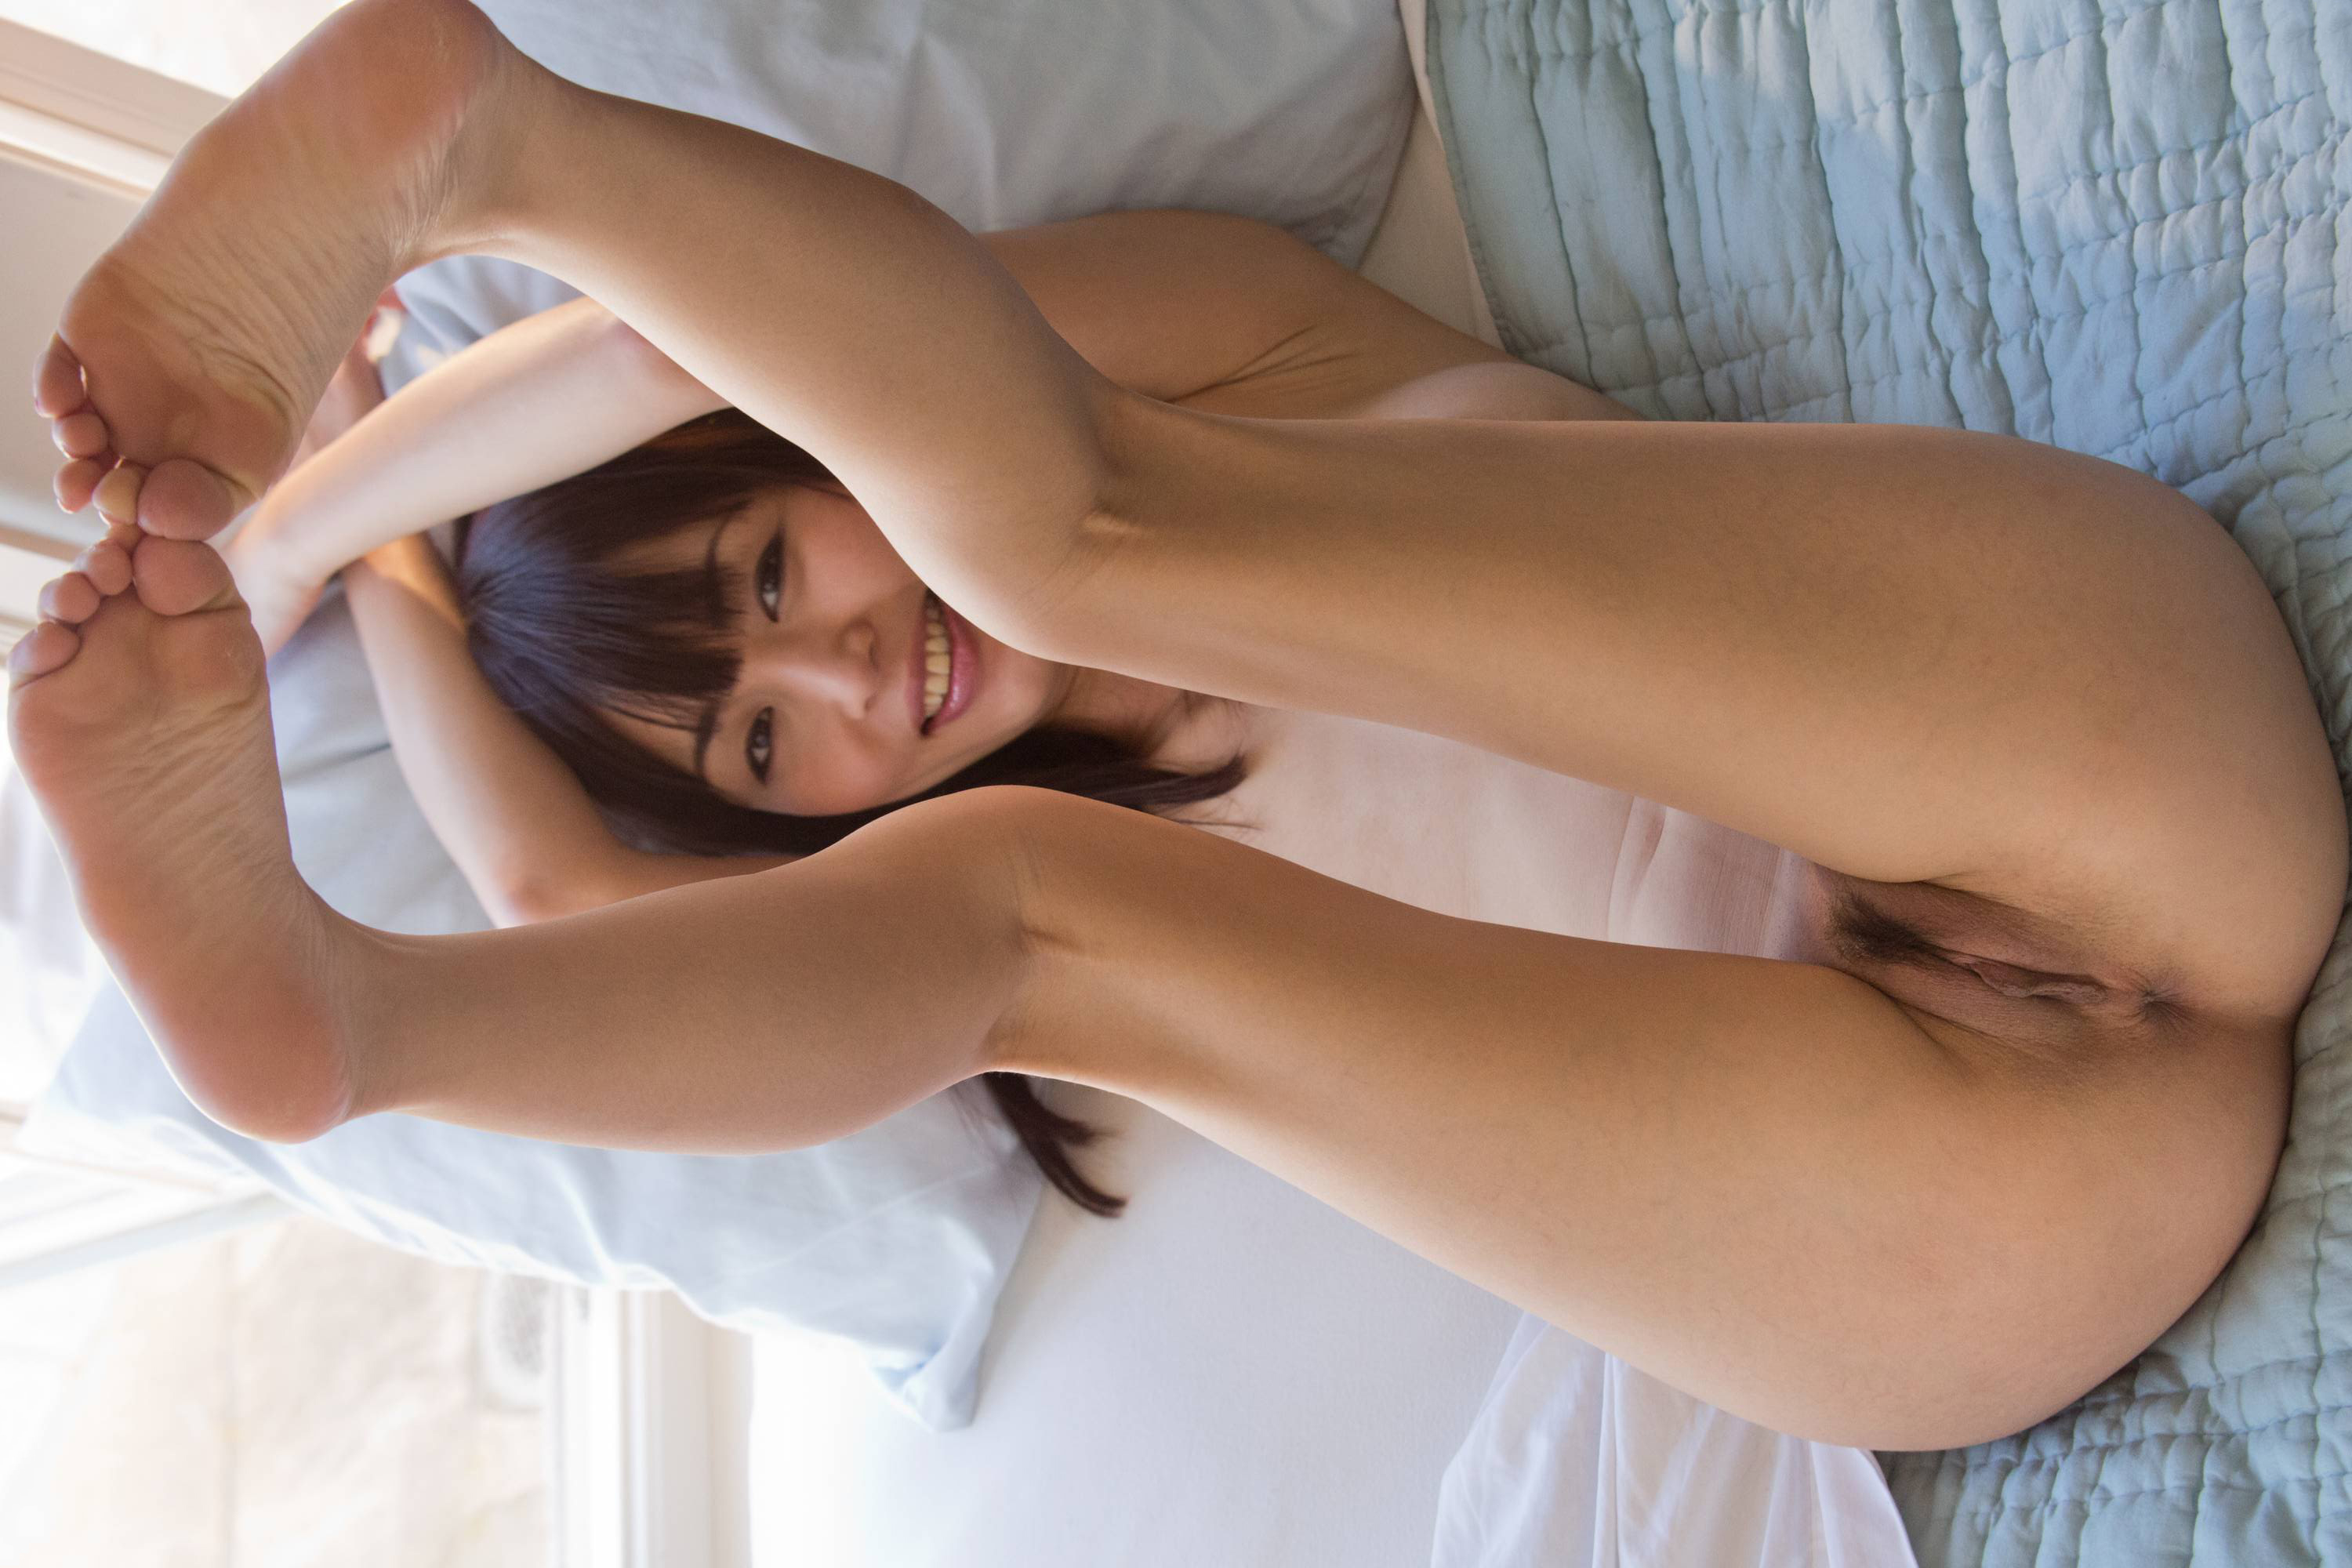 Something is. Cute girls naked asians bigass not present